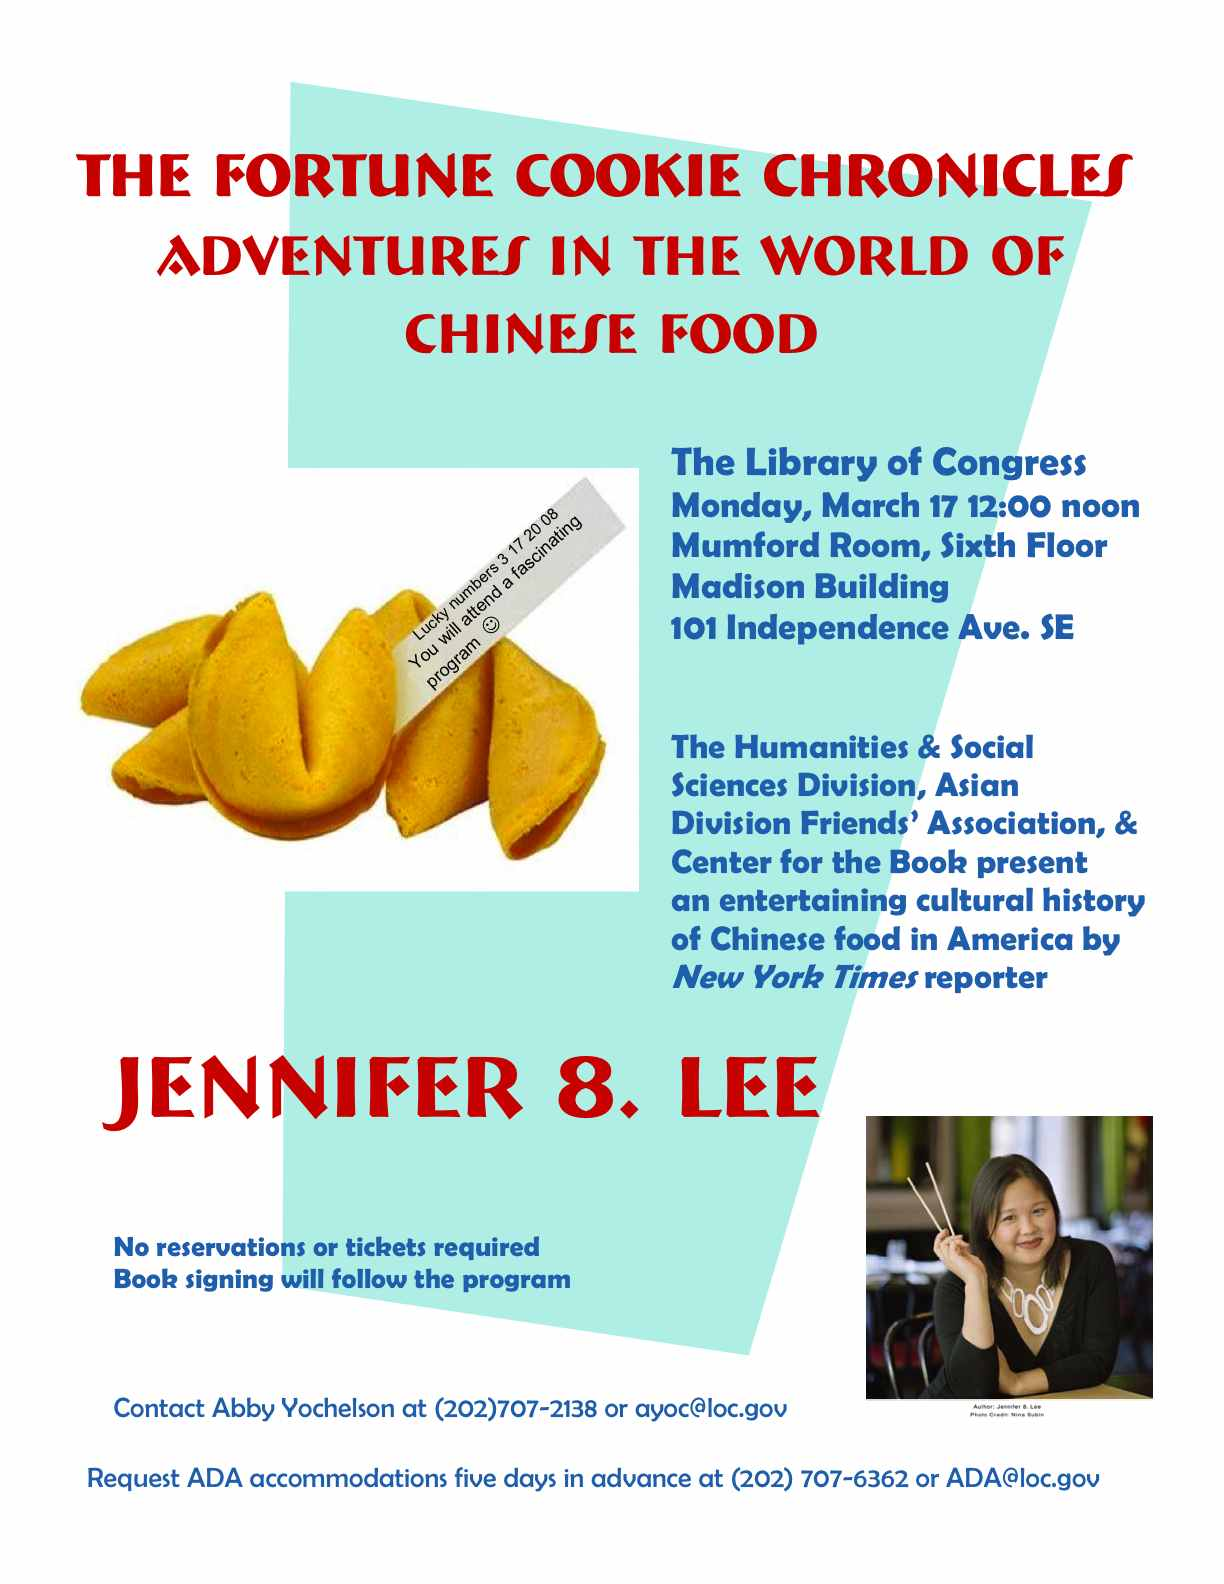 Library of Congress Fortune Cookie Chronicles Flyer